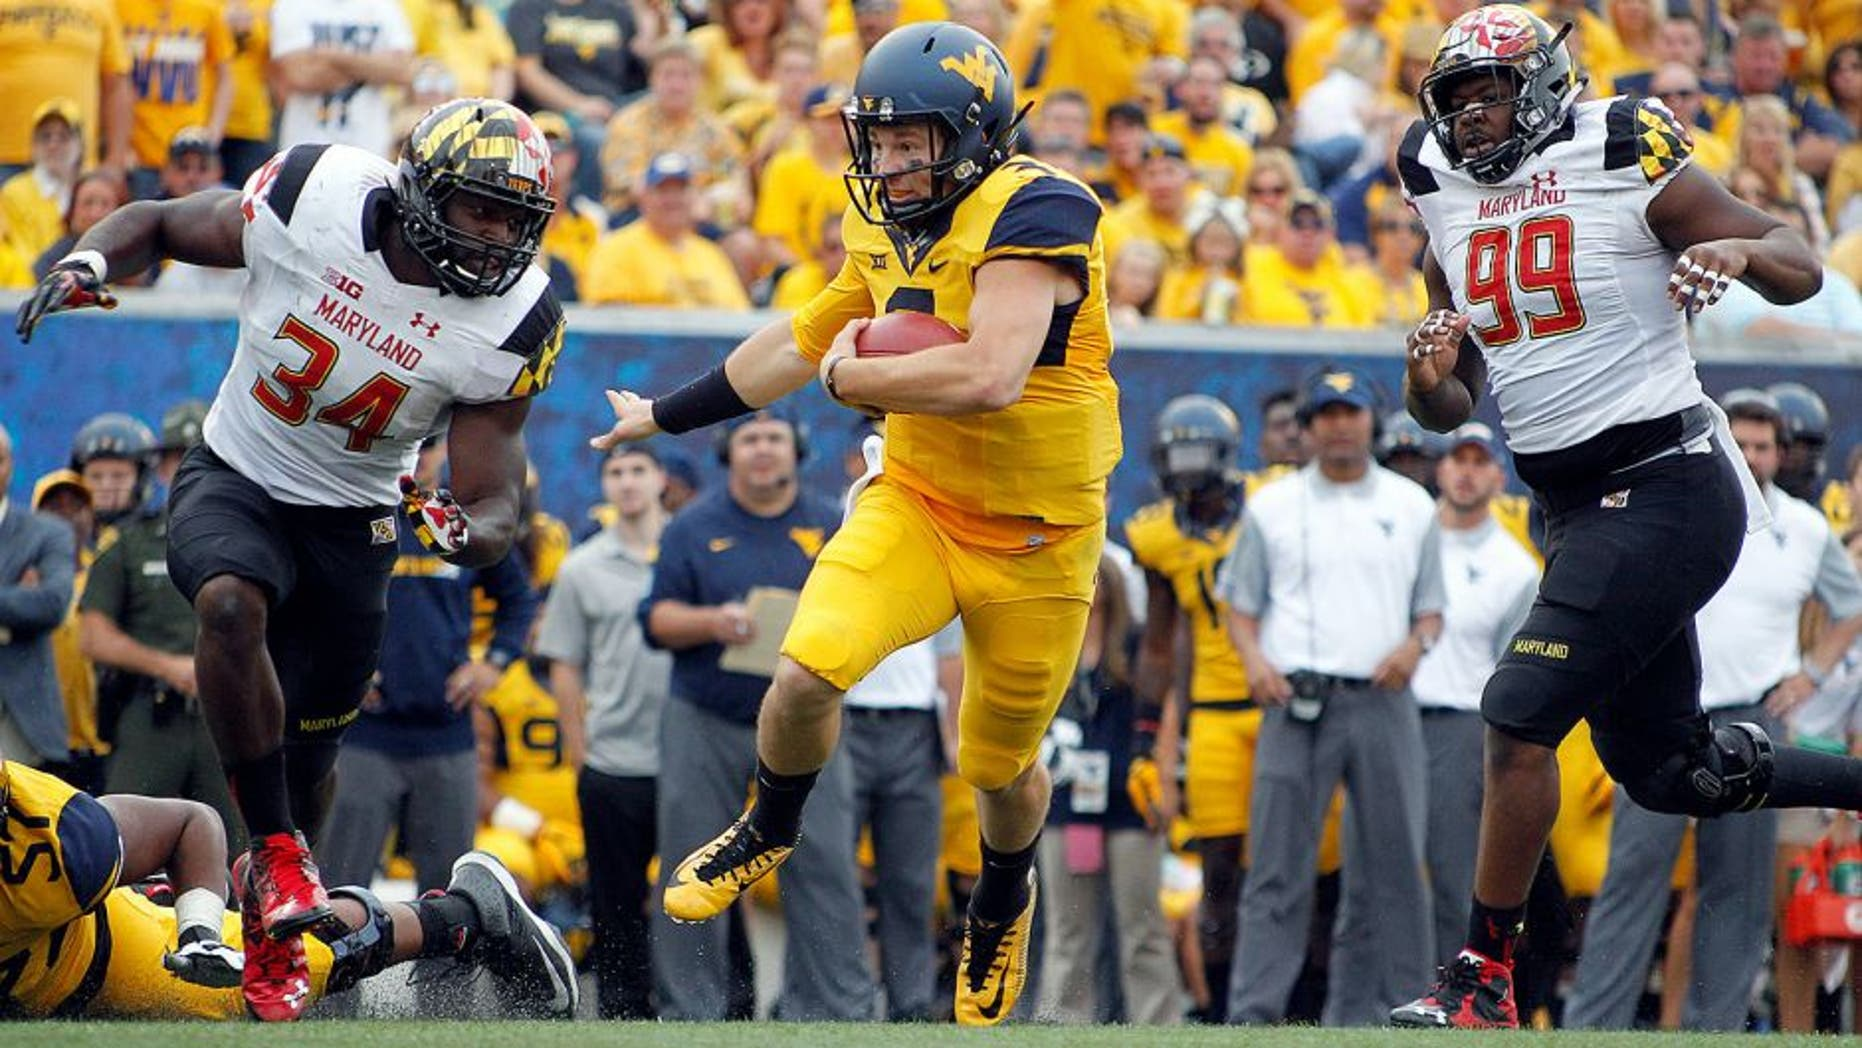 MORGANTOWN, WV - SEPTEMBER 26: Skyler Howard #3 of the West Virginia Mountaineers rushes against Quinton Jefferson #99 and Jefferson Ashiru #34 of the Maryland Terrapins during the game on September 26, 2015 at Mountaineer Field in Morgantown, West Virginia. (Photo by Justin K. Aller/Getty Images)